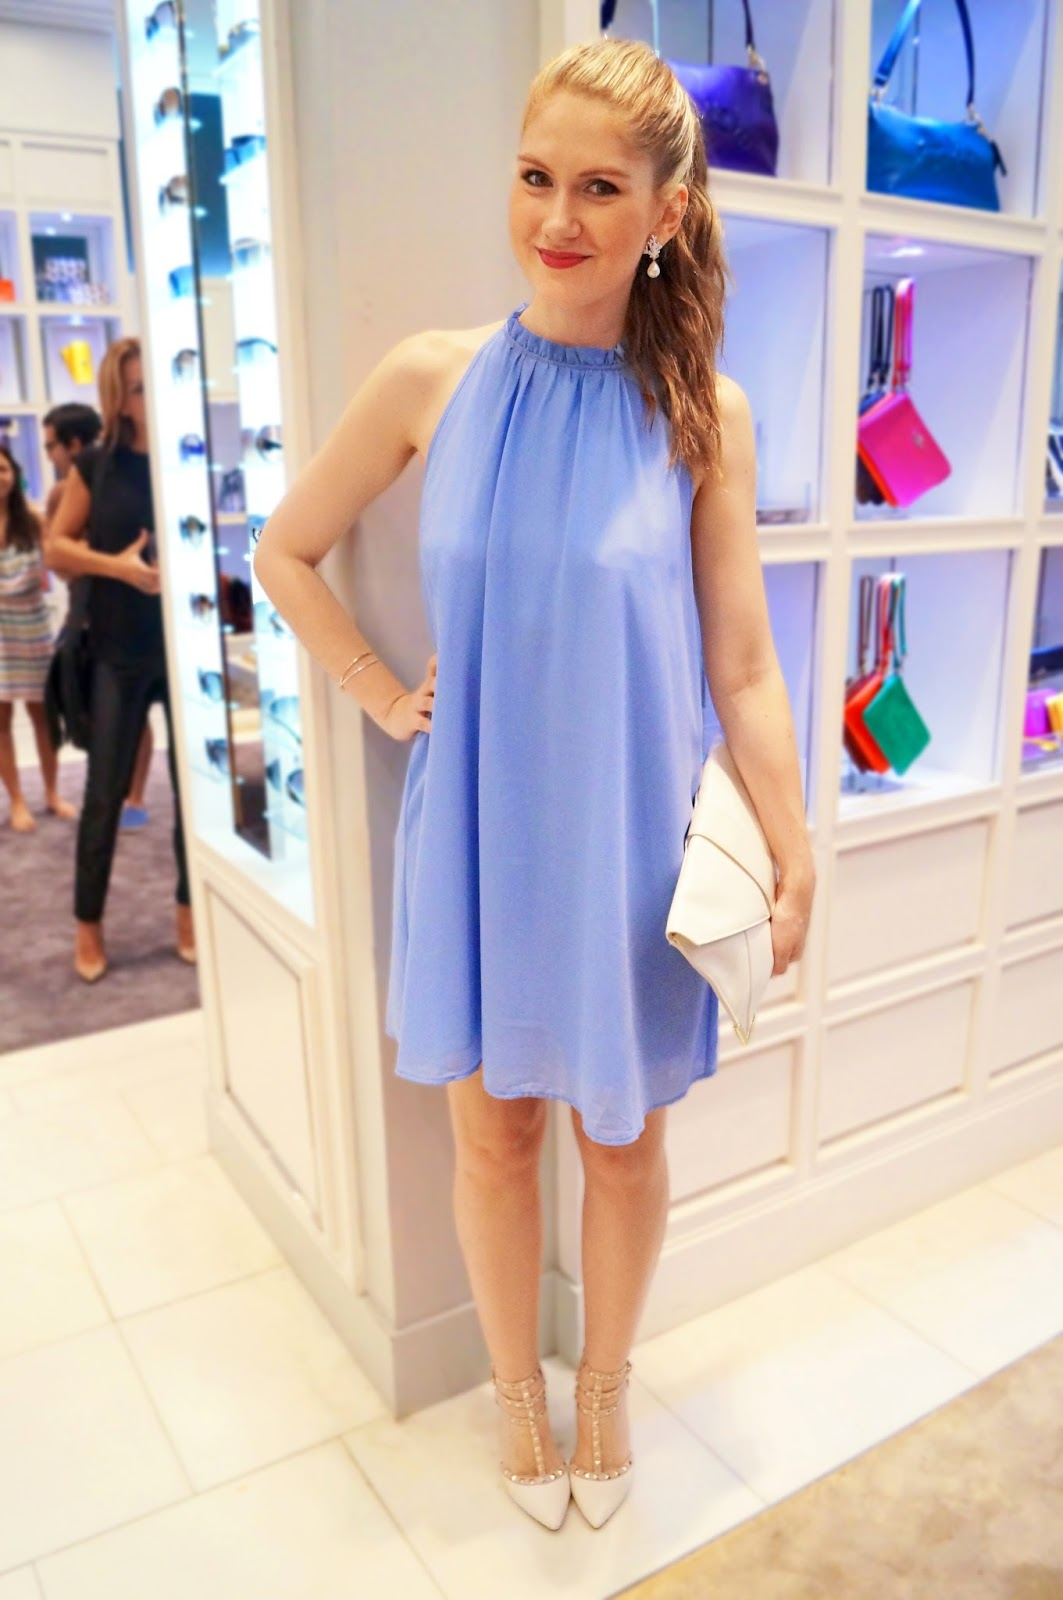 Comfy Periwinkle dress from Forever21